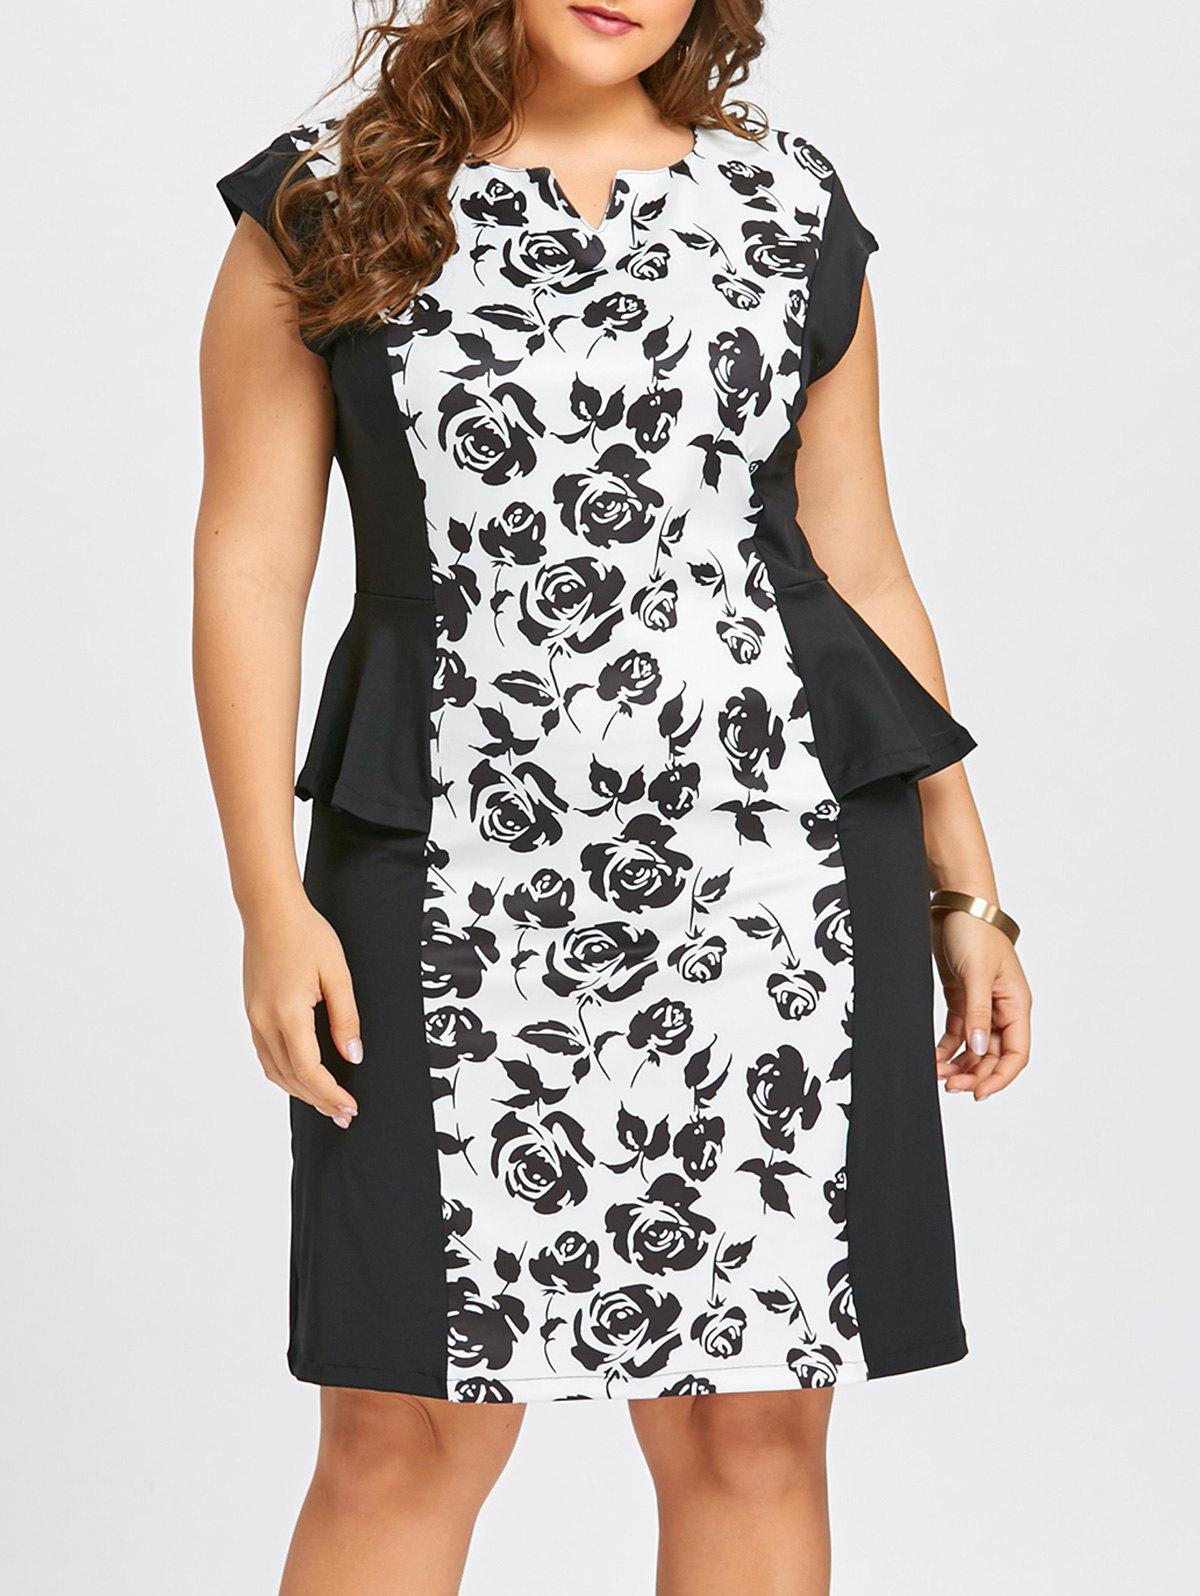 Plus Size Notched Floral Peplum Fitted DressWOMEN<br><br>Size: 6XL; Color: WHITE; Style: Work; Material: Polyester; Silhouette: Sheath; Dresses Length: Knee-Length; Neckline: V-Neck; Sleeve Type: Cap Sleeve; Sleeve Length: Short Sleeves; Embellishment: Flounce,Ruffles; Pattern Type: Floral; With Belt: No; Season: Fall,Winter; Weight: 0.4500kg; Package Contents: 1 x Dress;